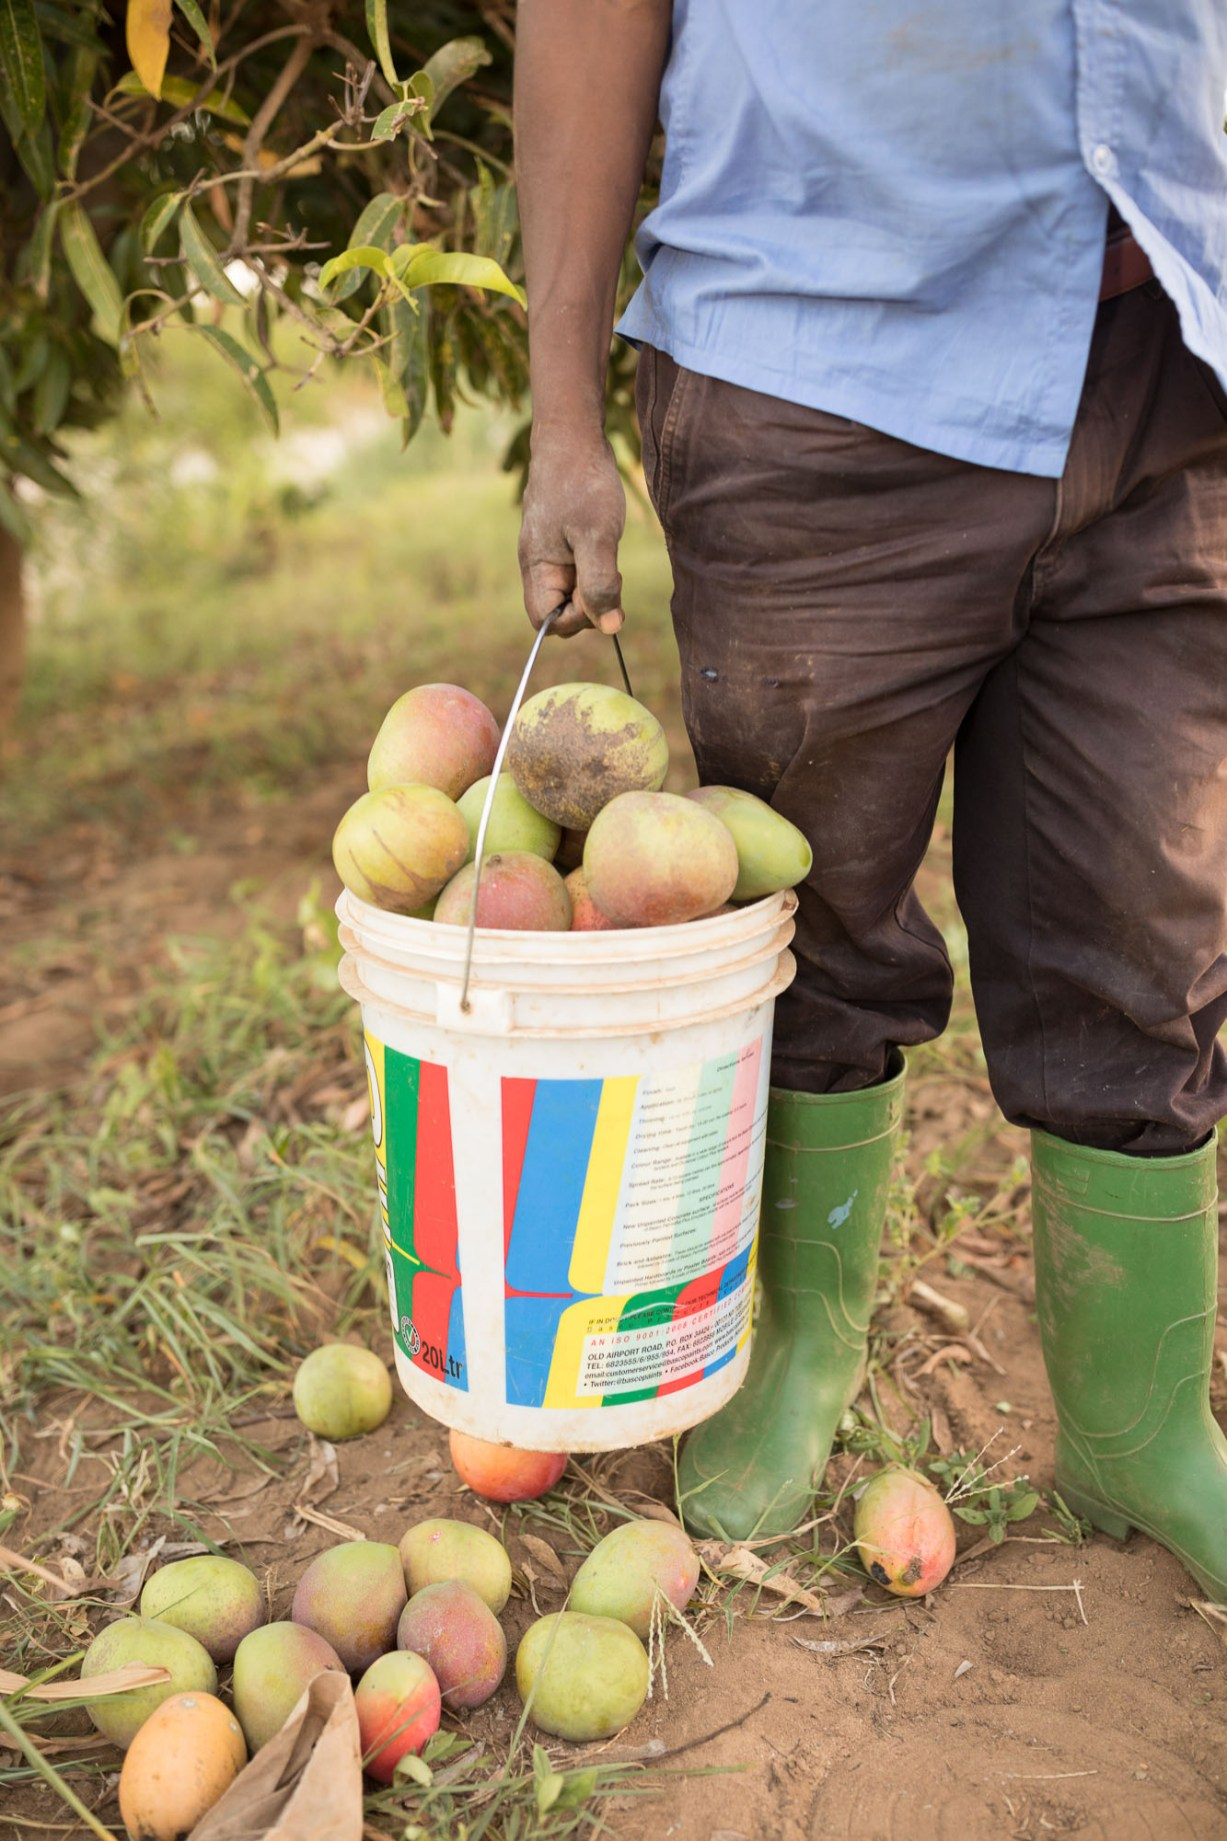 A farmer carries a bucket of freshly-harvested mangos in from the field on his farm in Makueni County, Kenya.